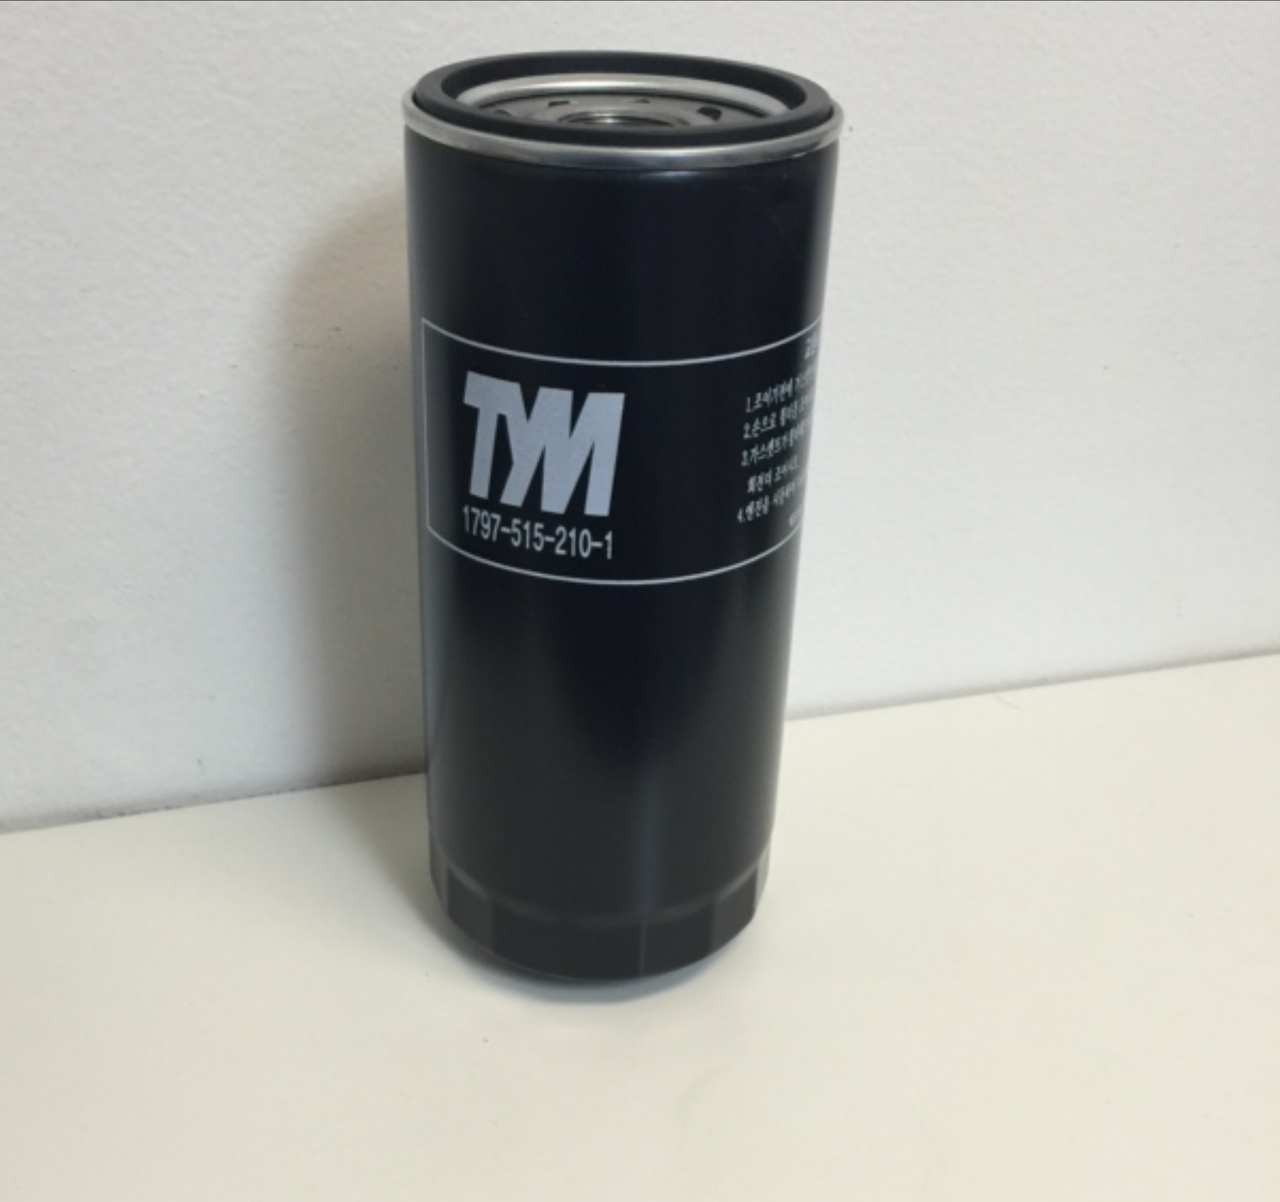 HYDRAULIC OIL FILTER -TYM FILTER Assy, Suction 43